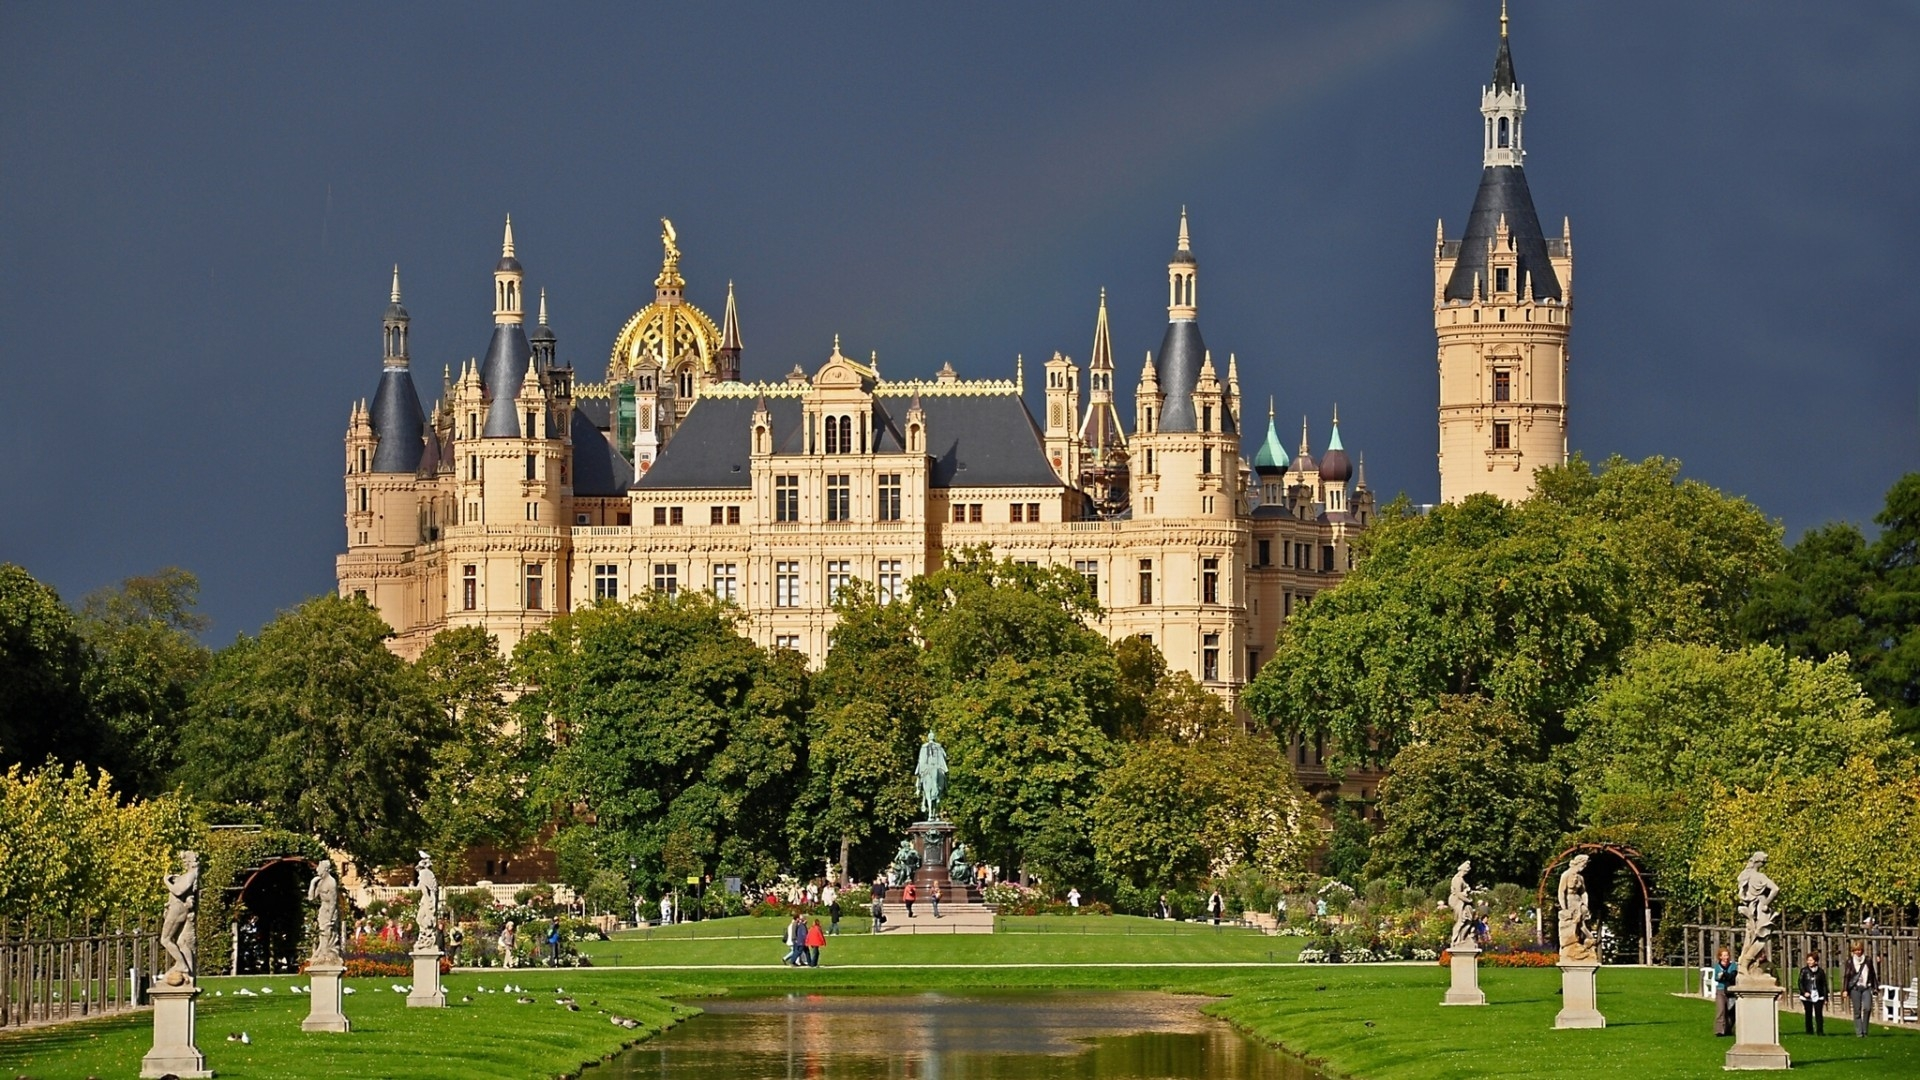 Schwerin Castle Germany for 1920 x 1080 HDTV 1080p resolution